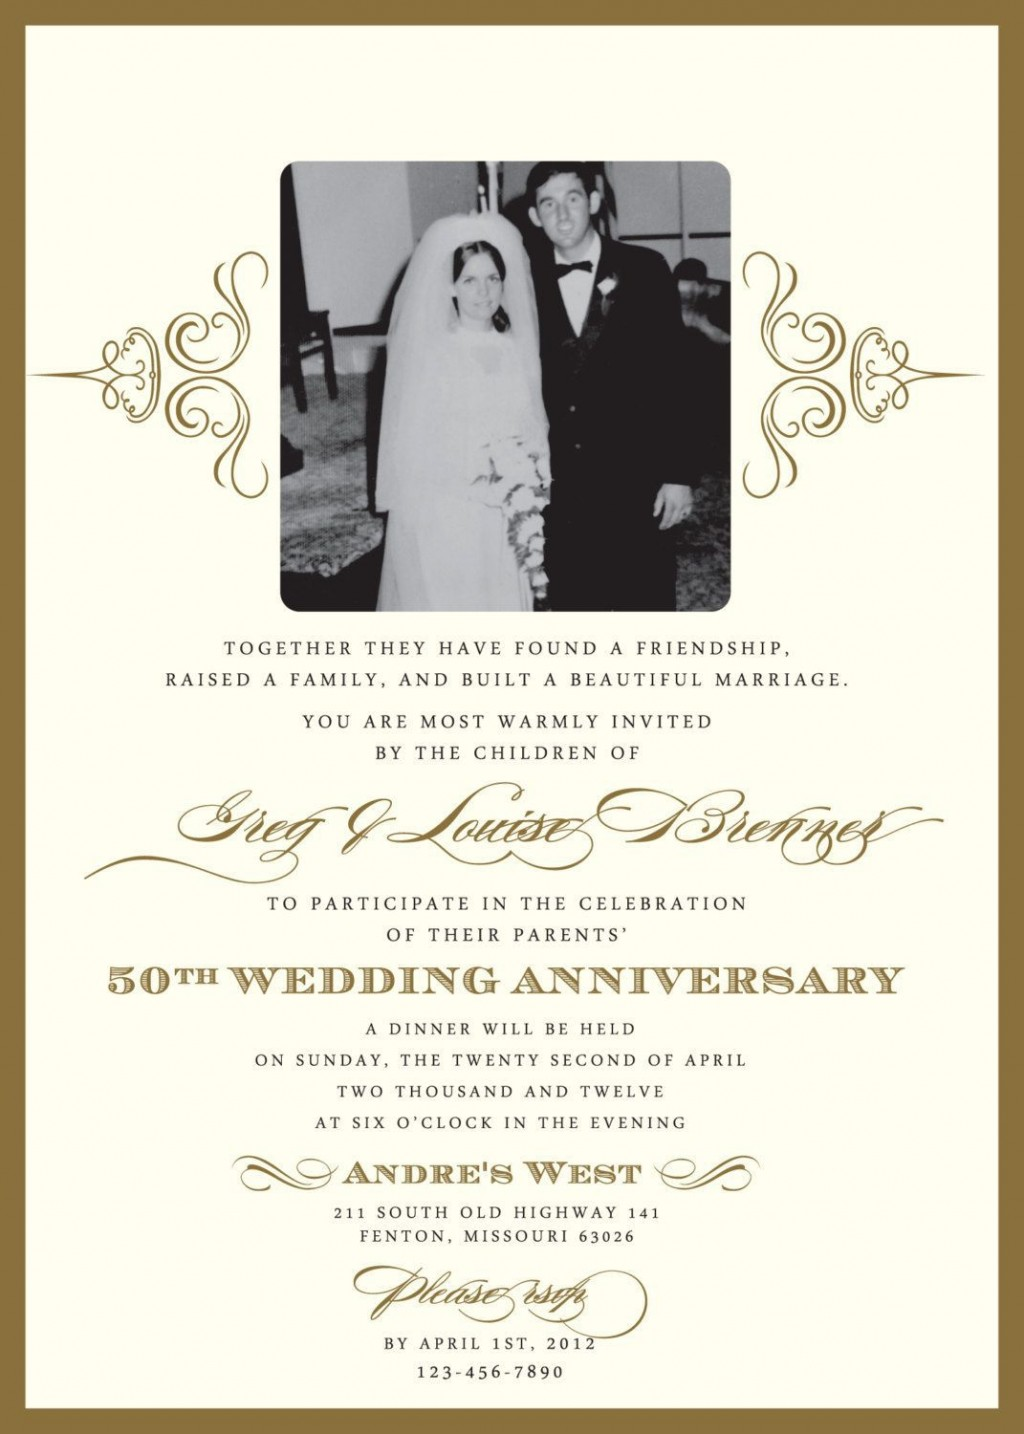 005 Magnificent 50th Wedding Anniversary Invitation Sample Picture  Samples Free Party Template Card IdeaLarge